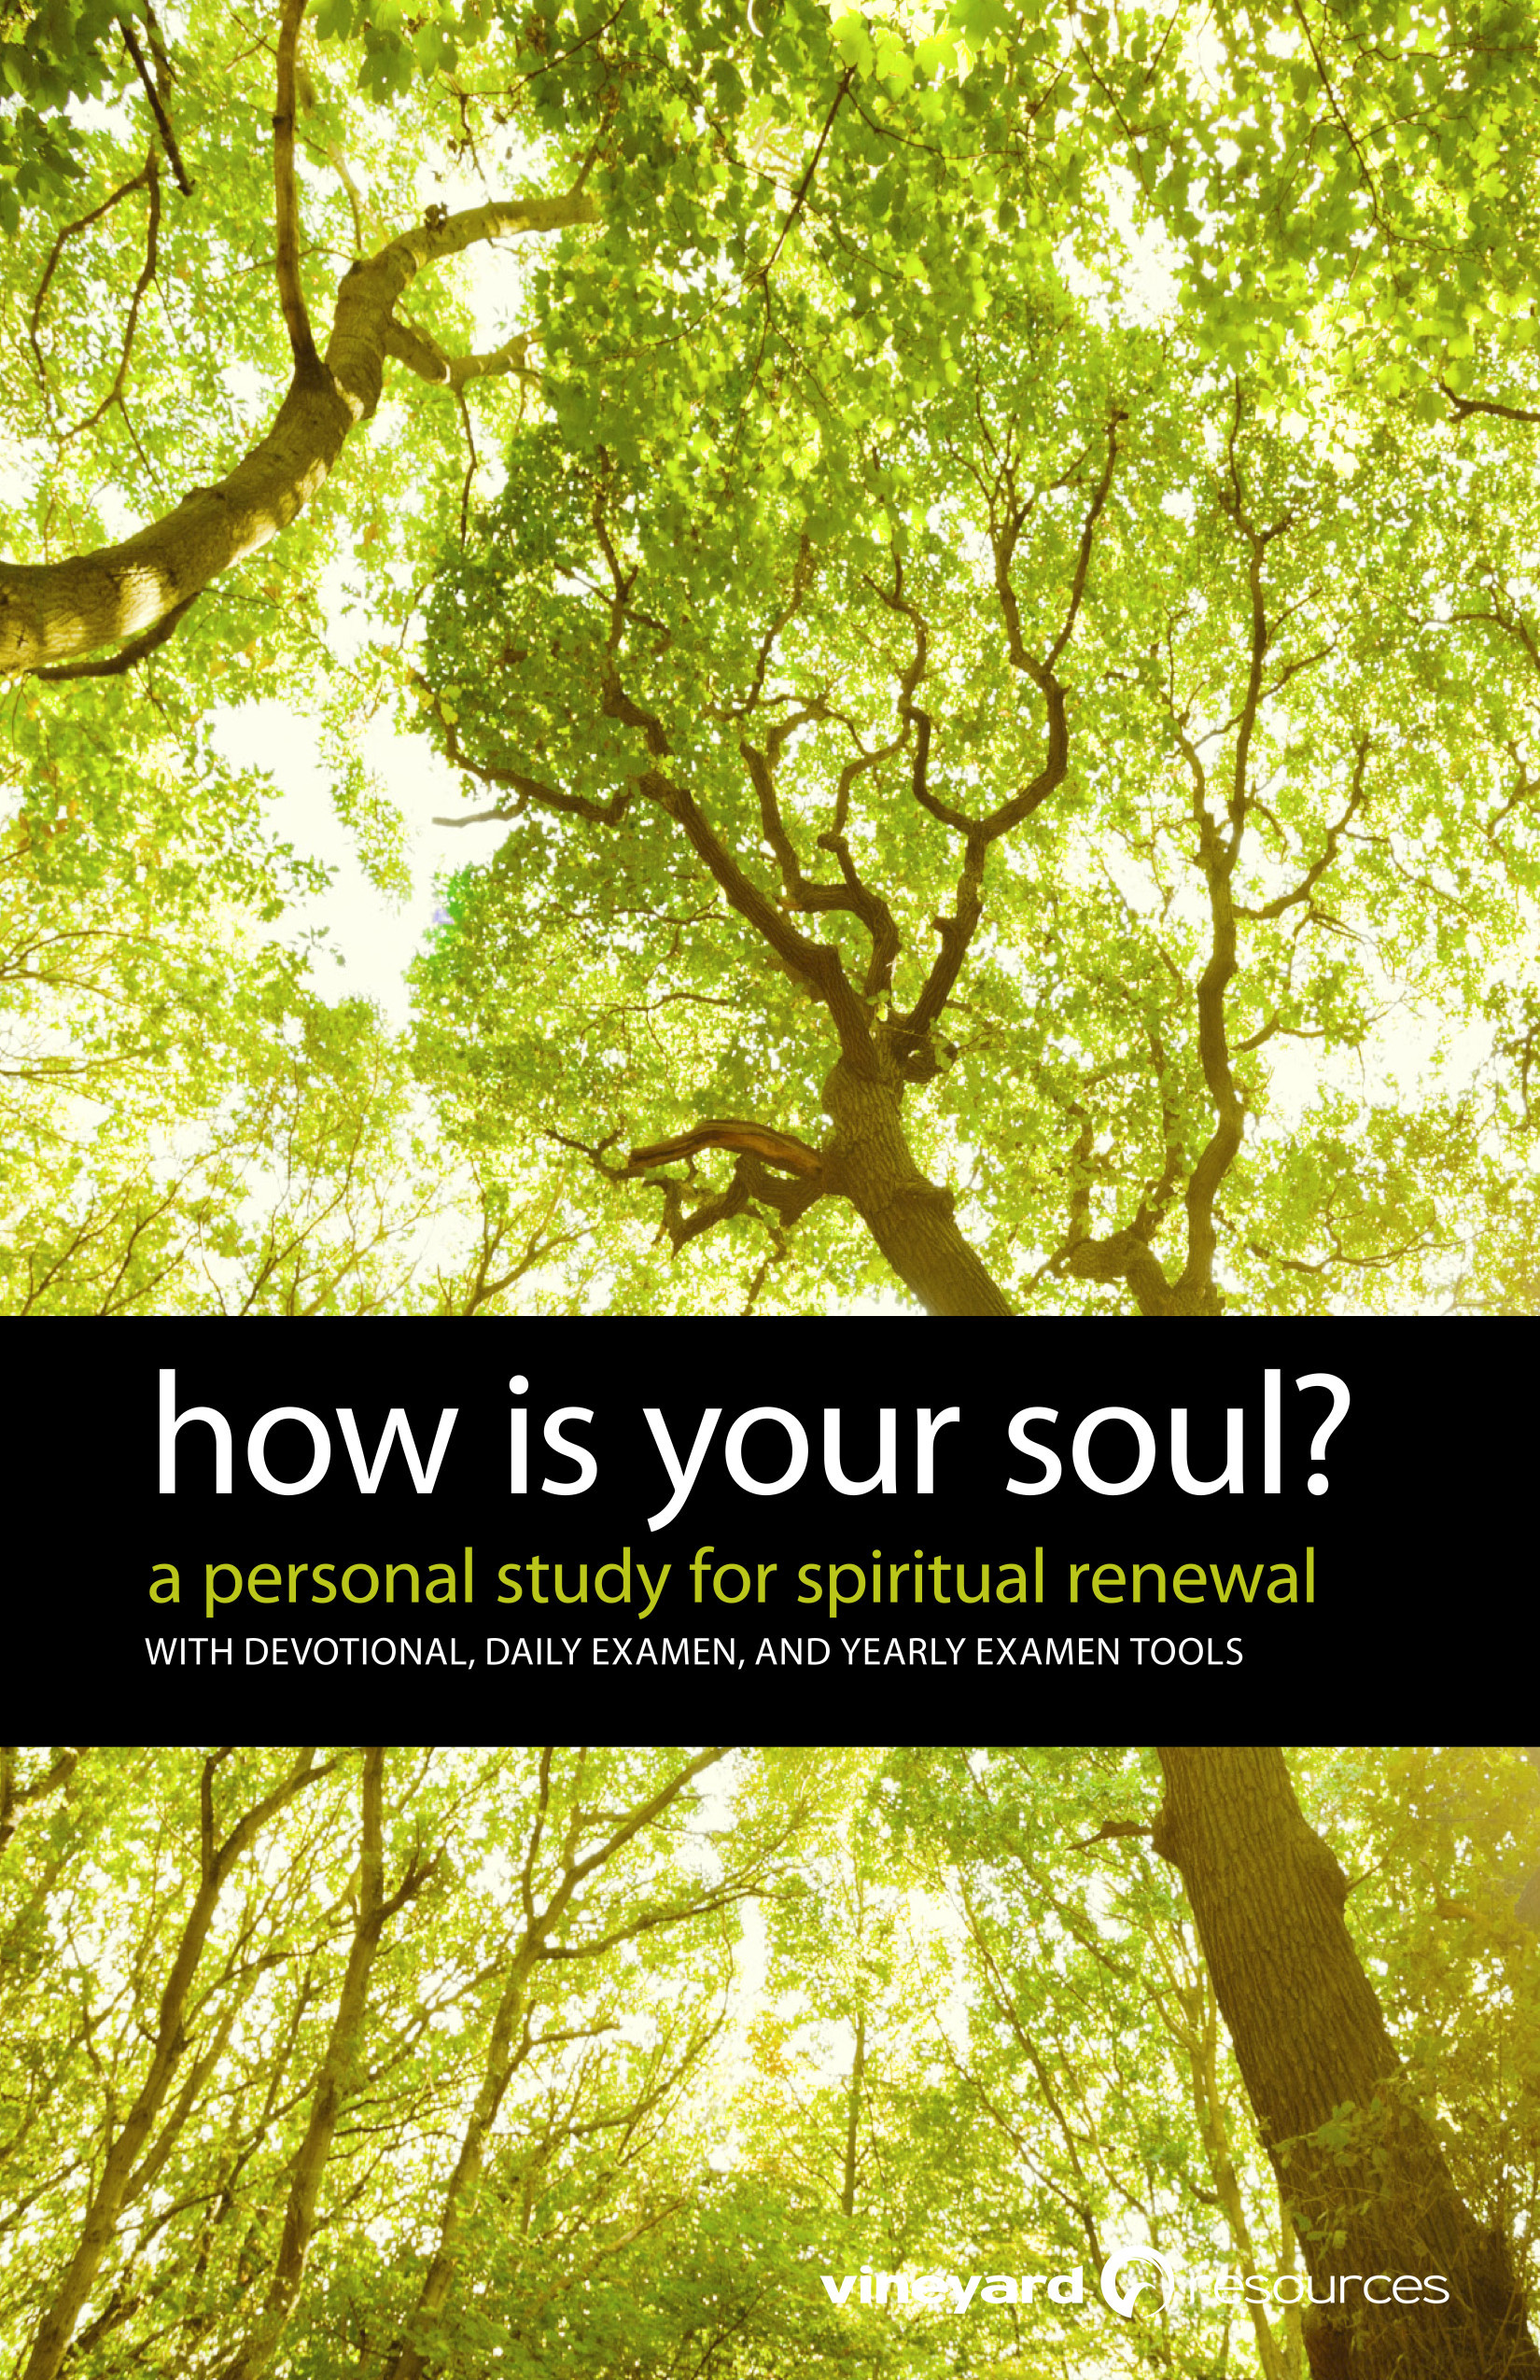 How Is Your Soul?: A Personal Study for Spiritual Renewal Vineyard Resources